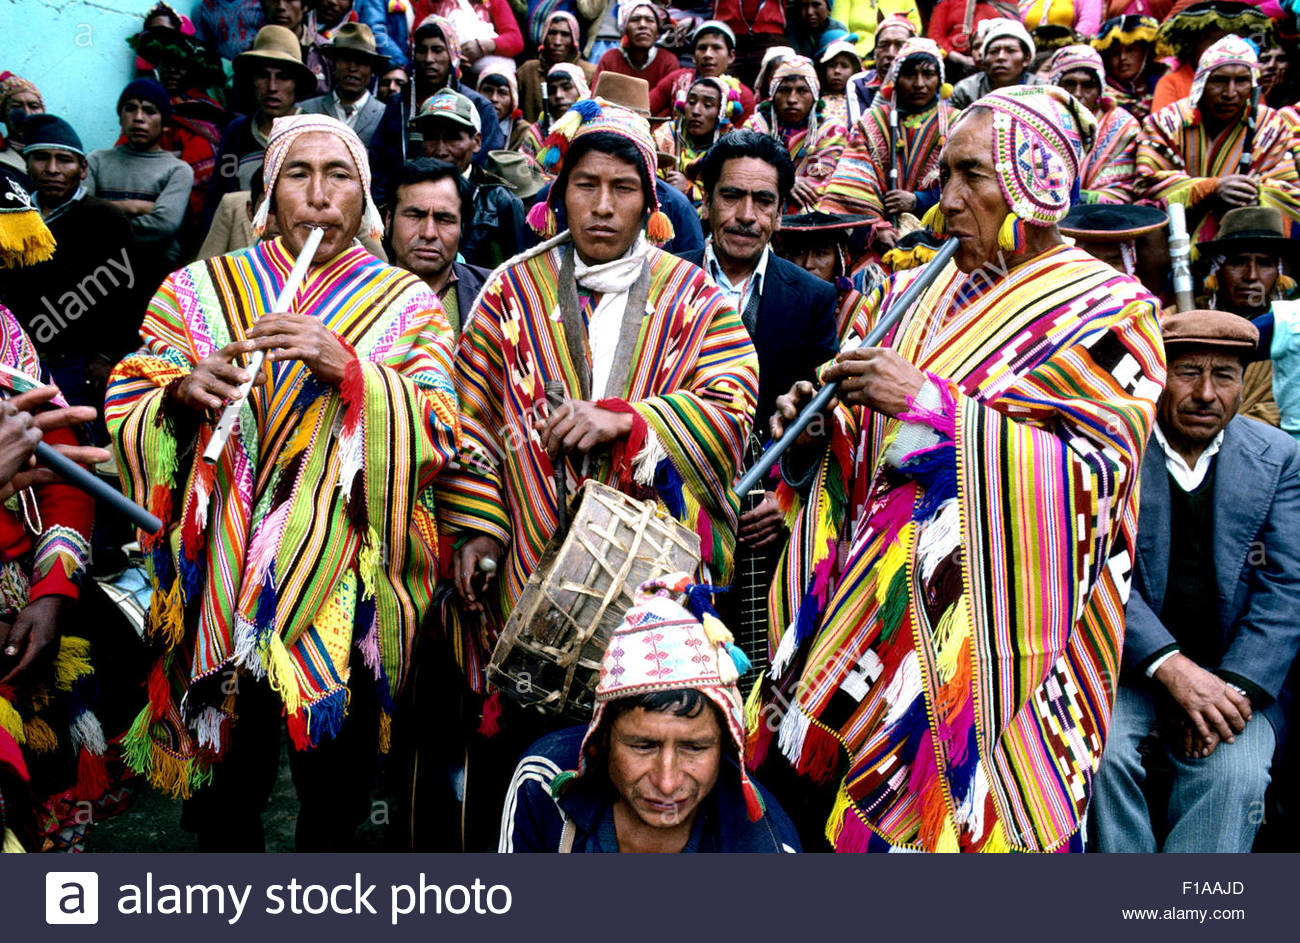 Peru, Cusco, traditional carnival in Ccatca Stock Photo: 86894373